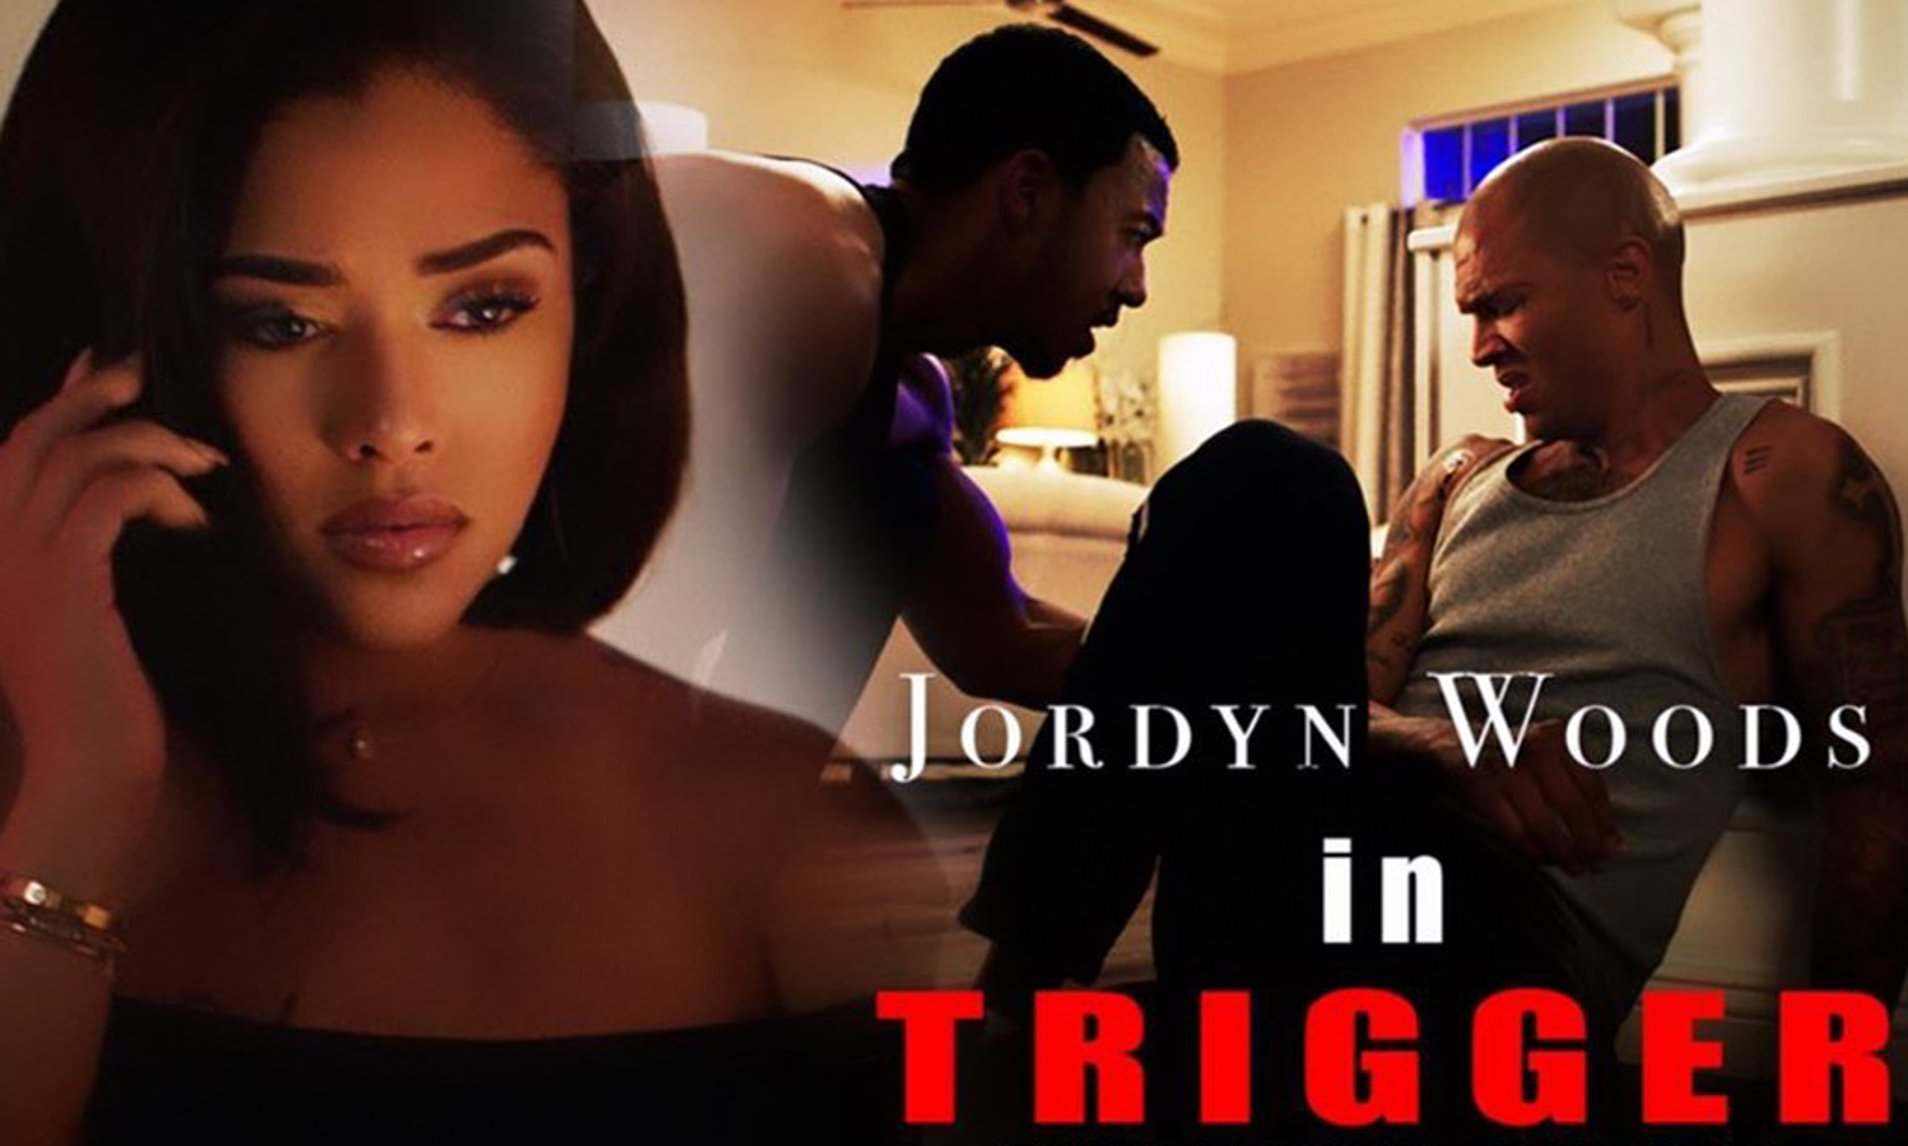 """""""jordyn-woods-makes-fans-proud-after-sharing-this-trailer-for-the-movie-trigger"""""""